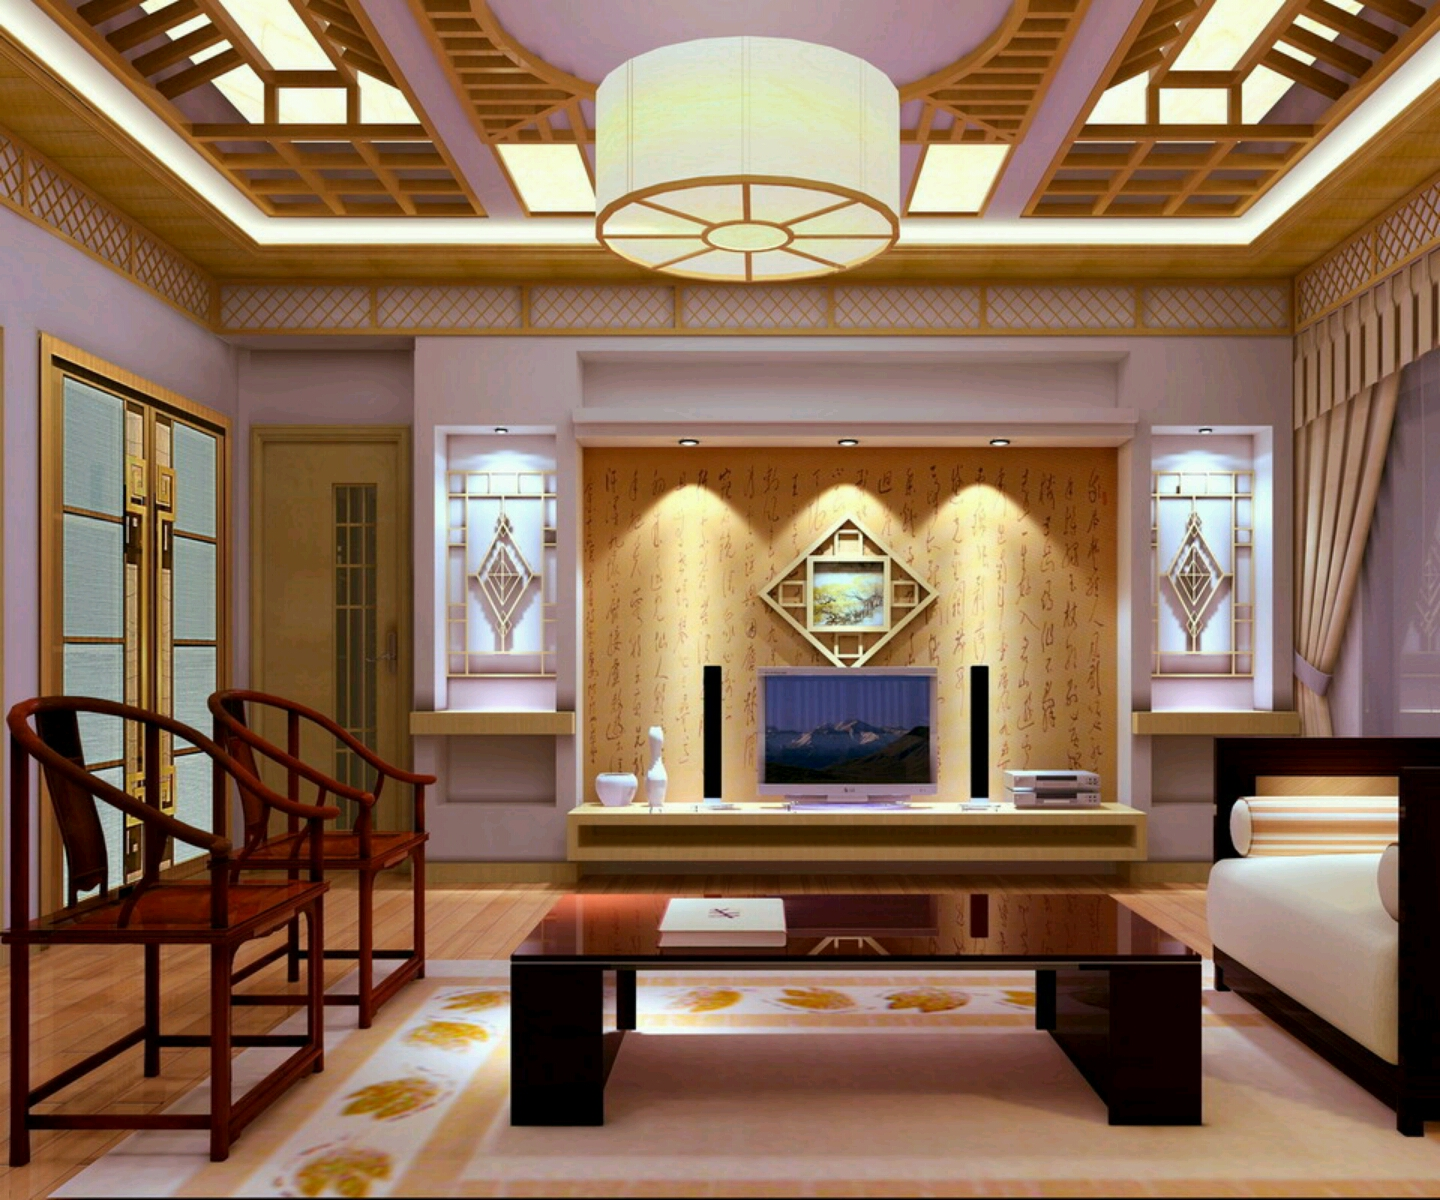 New home designs latest homes interior designs studyrooms for Home interior design images